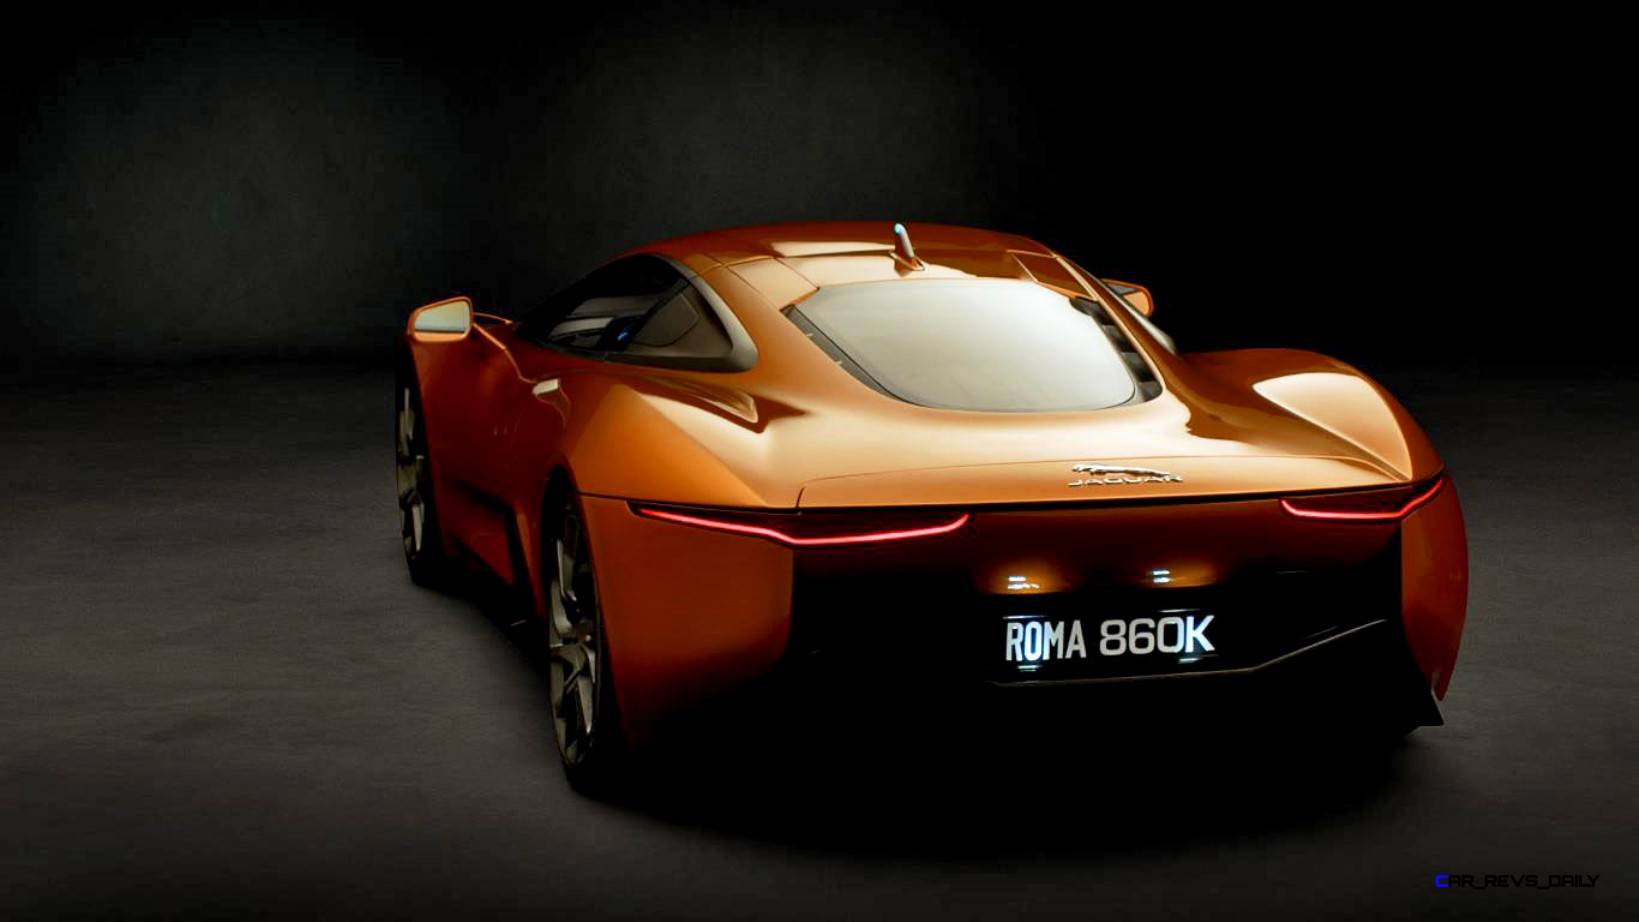 007 spectre bond cars jaguar cx 75 orange 17 click to open largest resolution image publicscrutiny Image collections